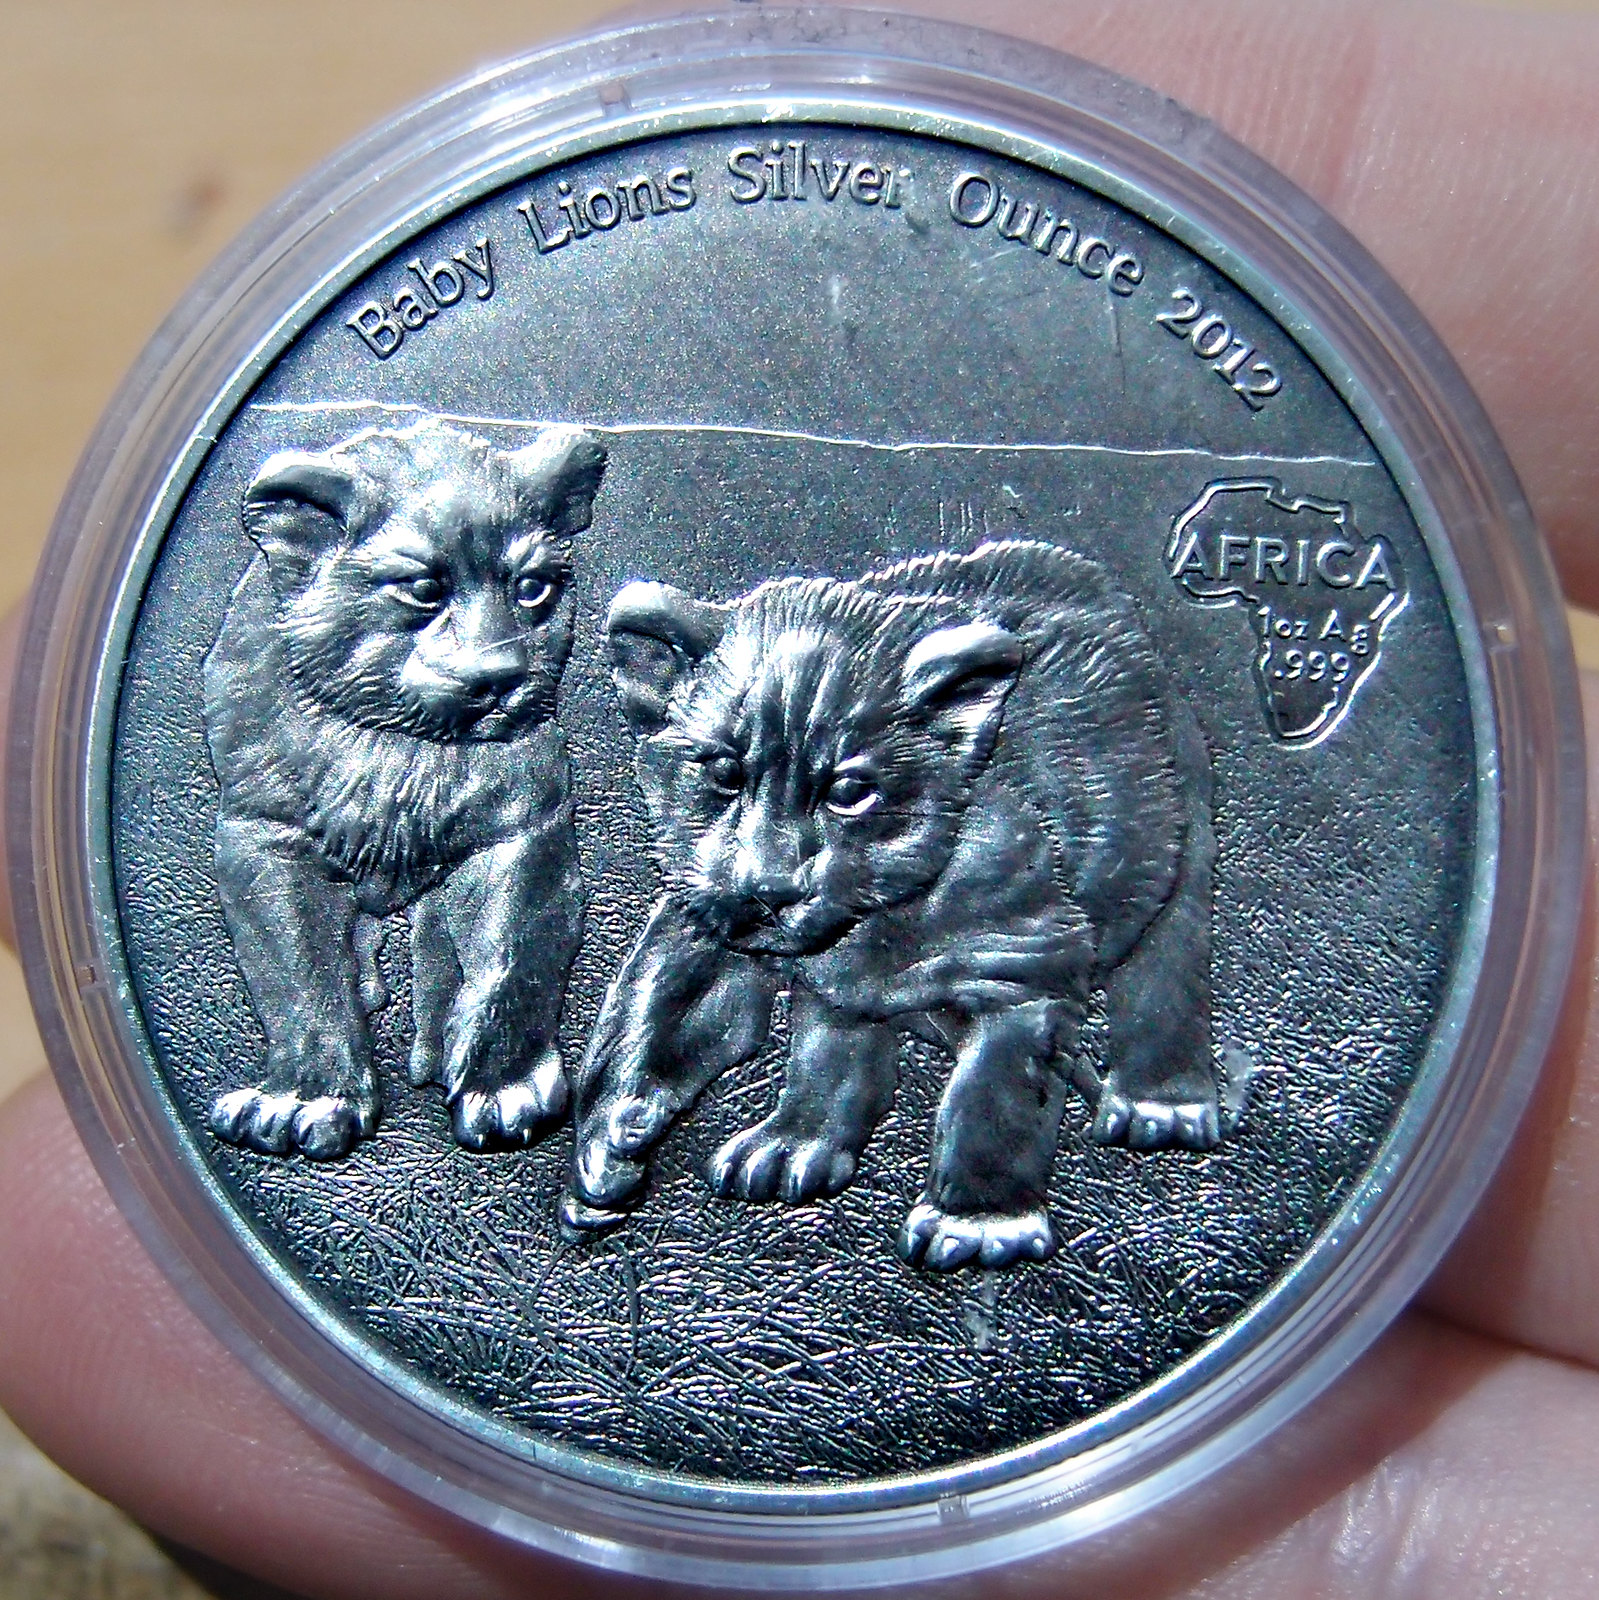 African Silver Ounce Serie  10025286185_8ee6ade8ff_h